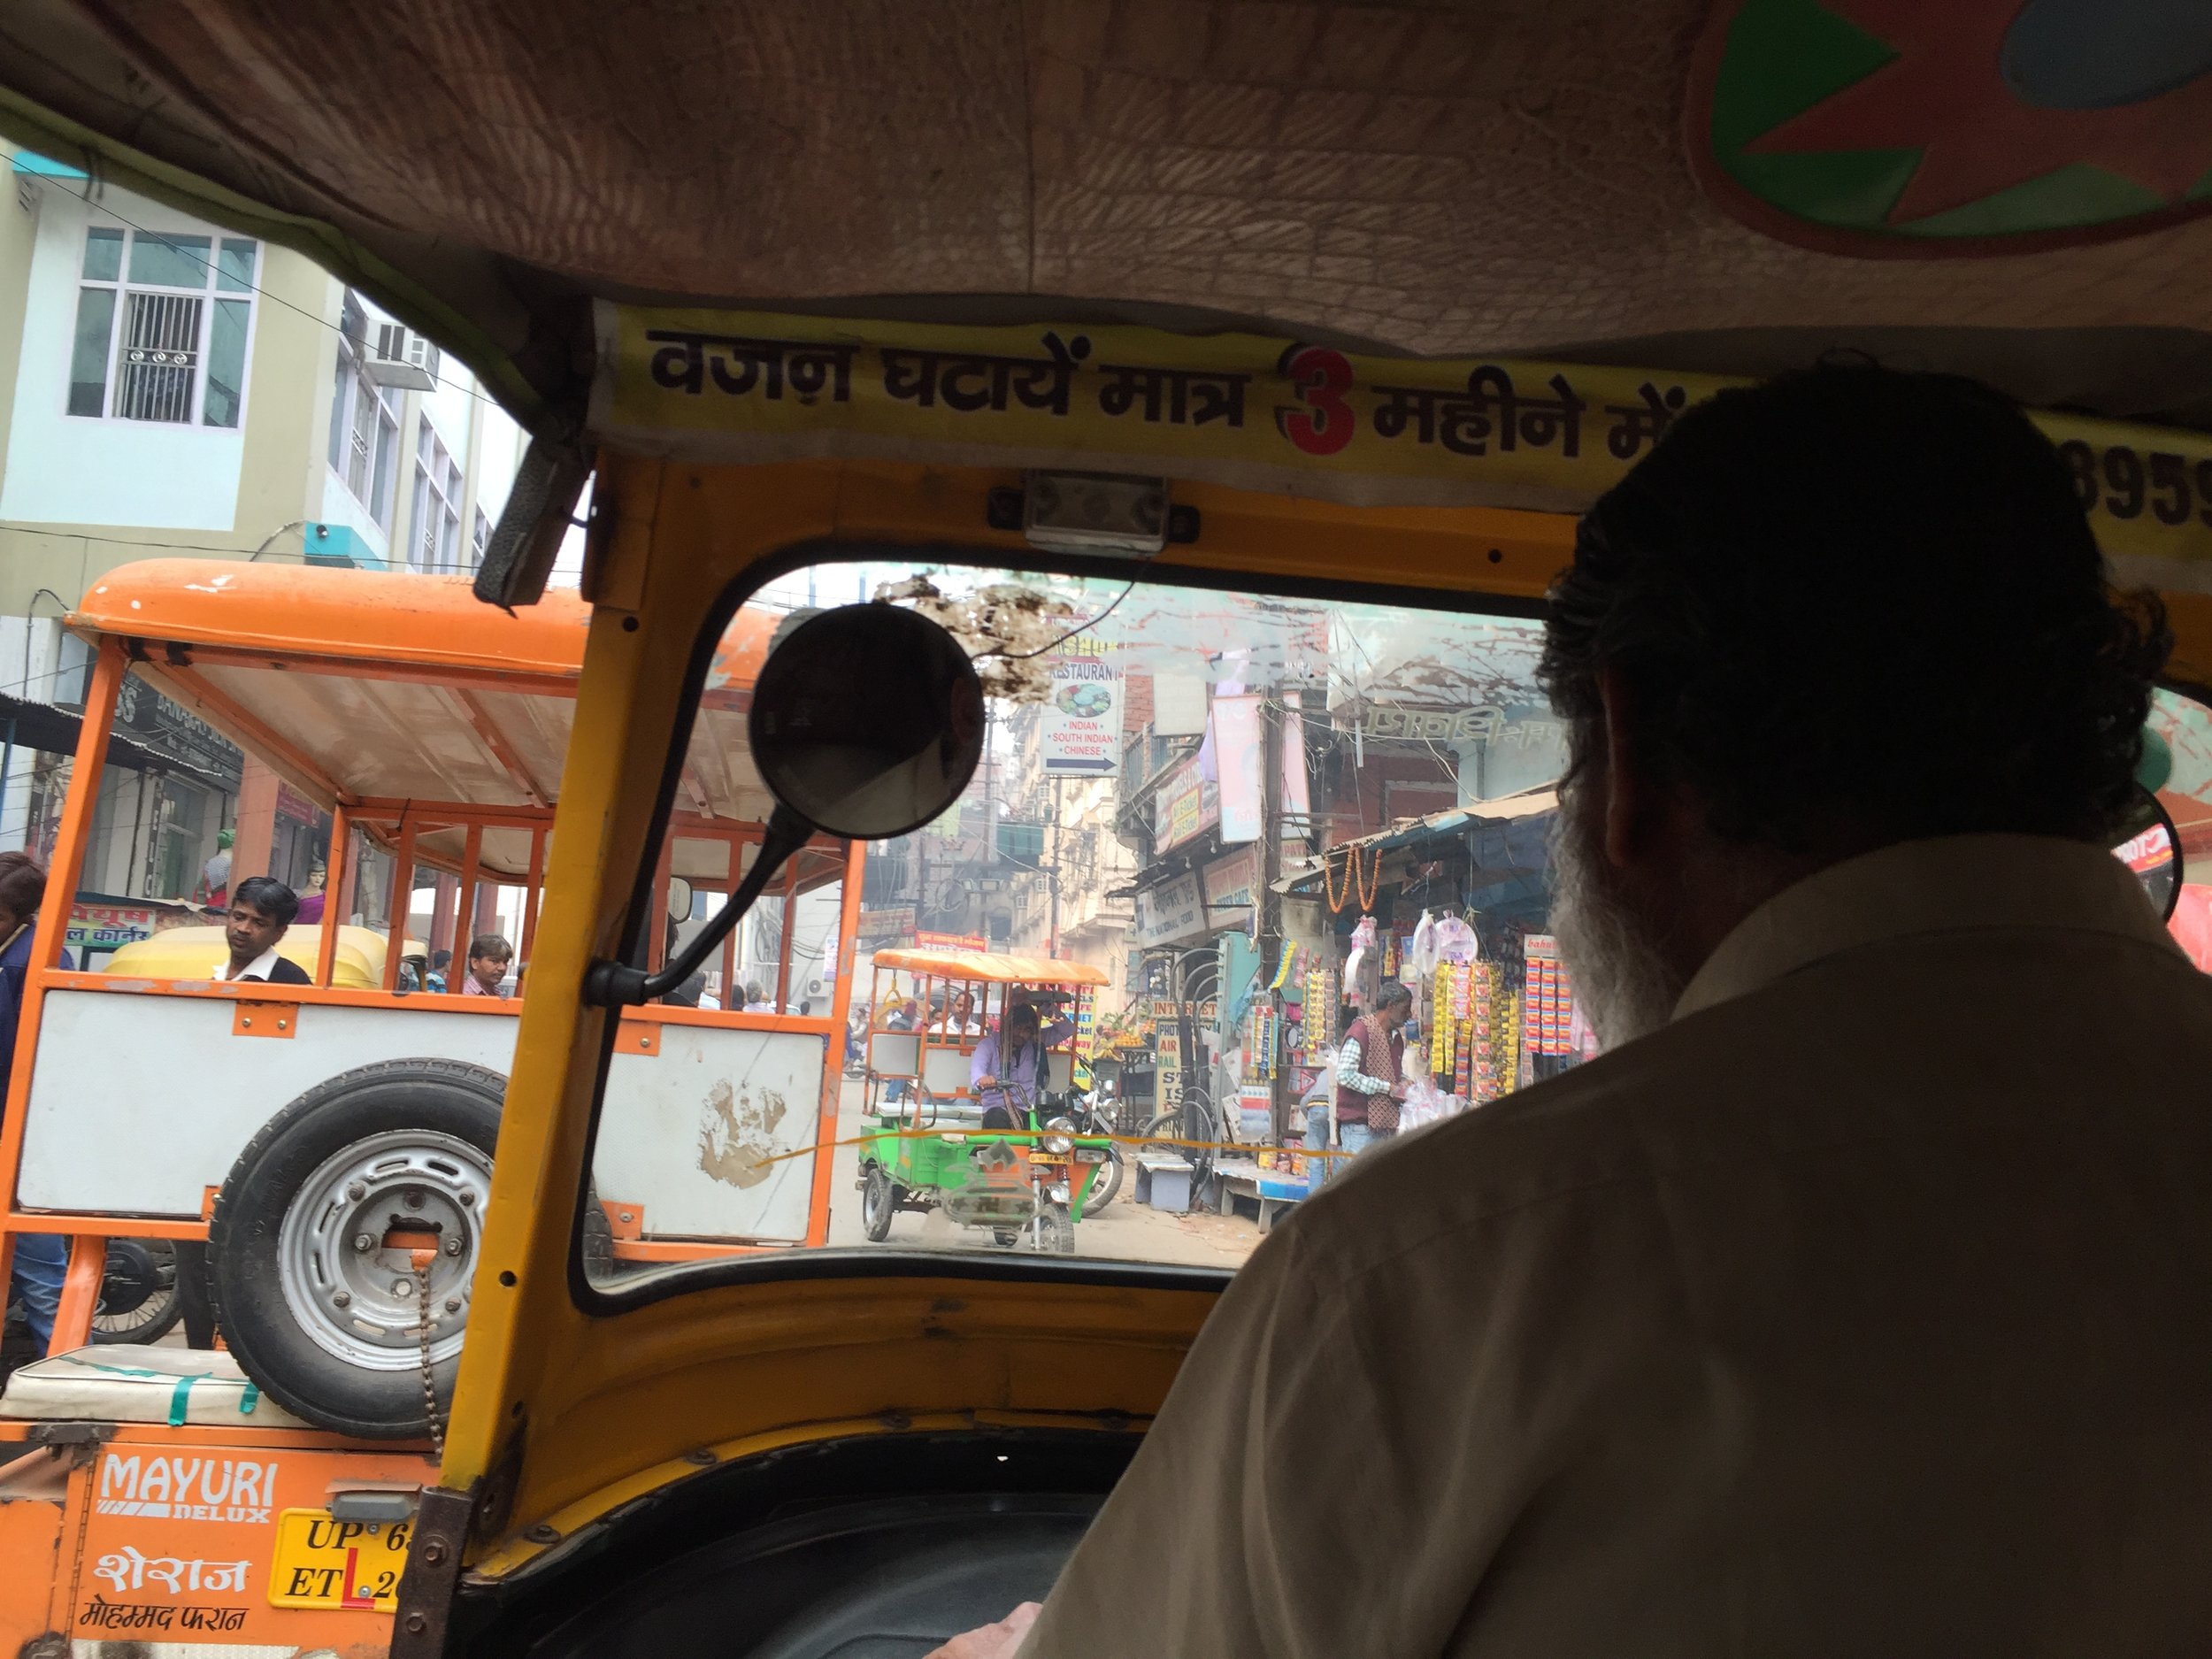 Rickshaw drivers in India, How to Stay Safe as a female solo traveler